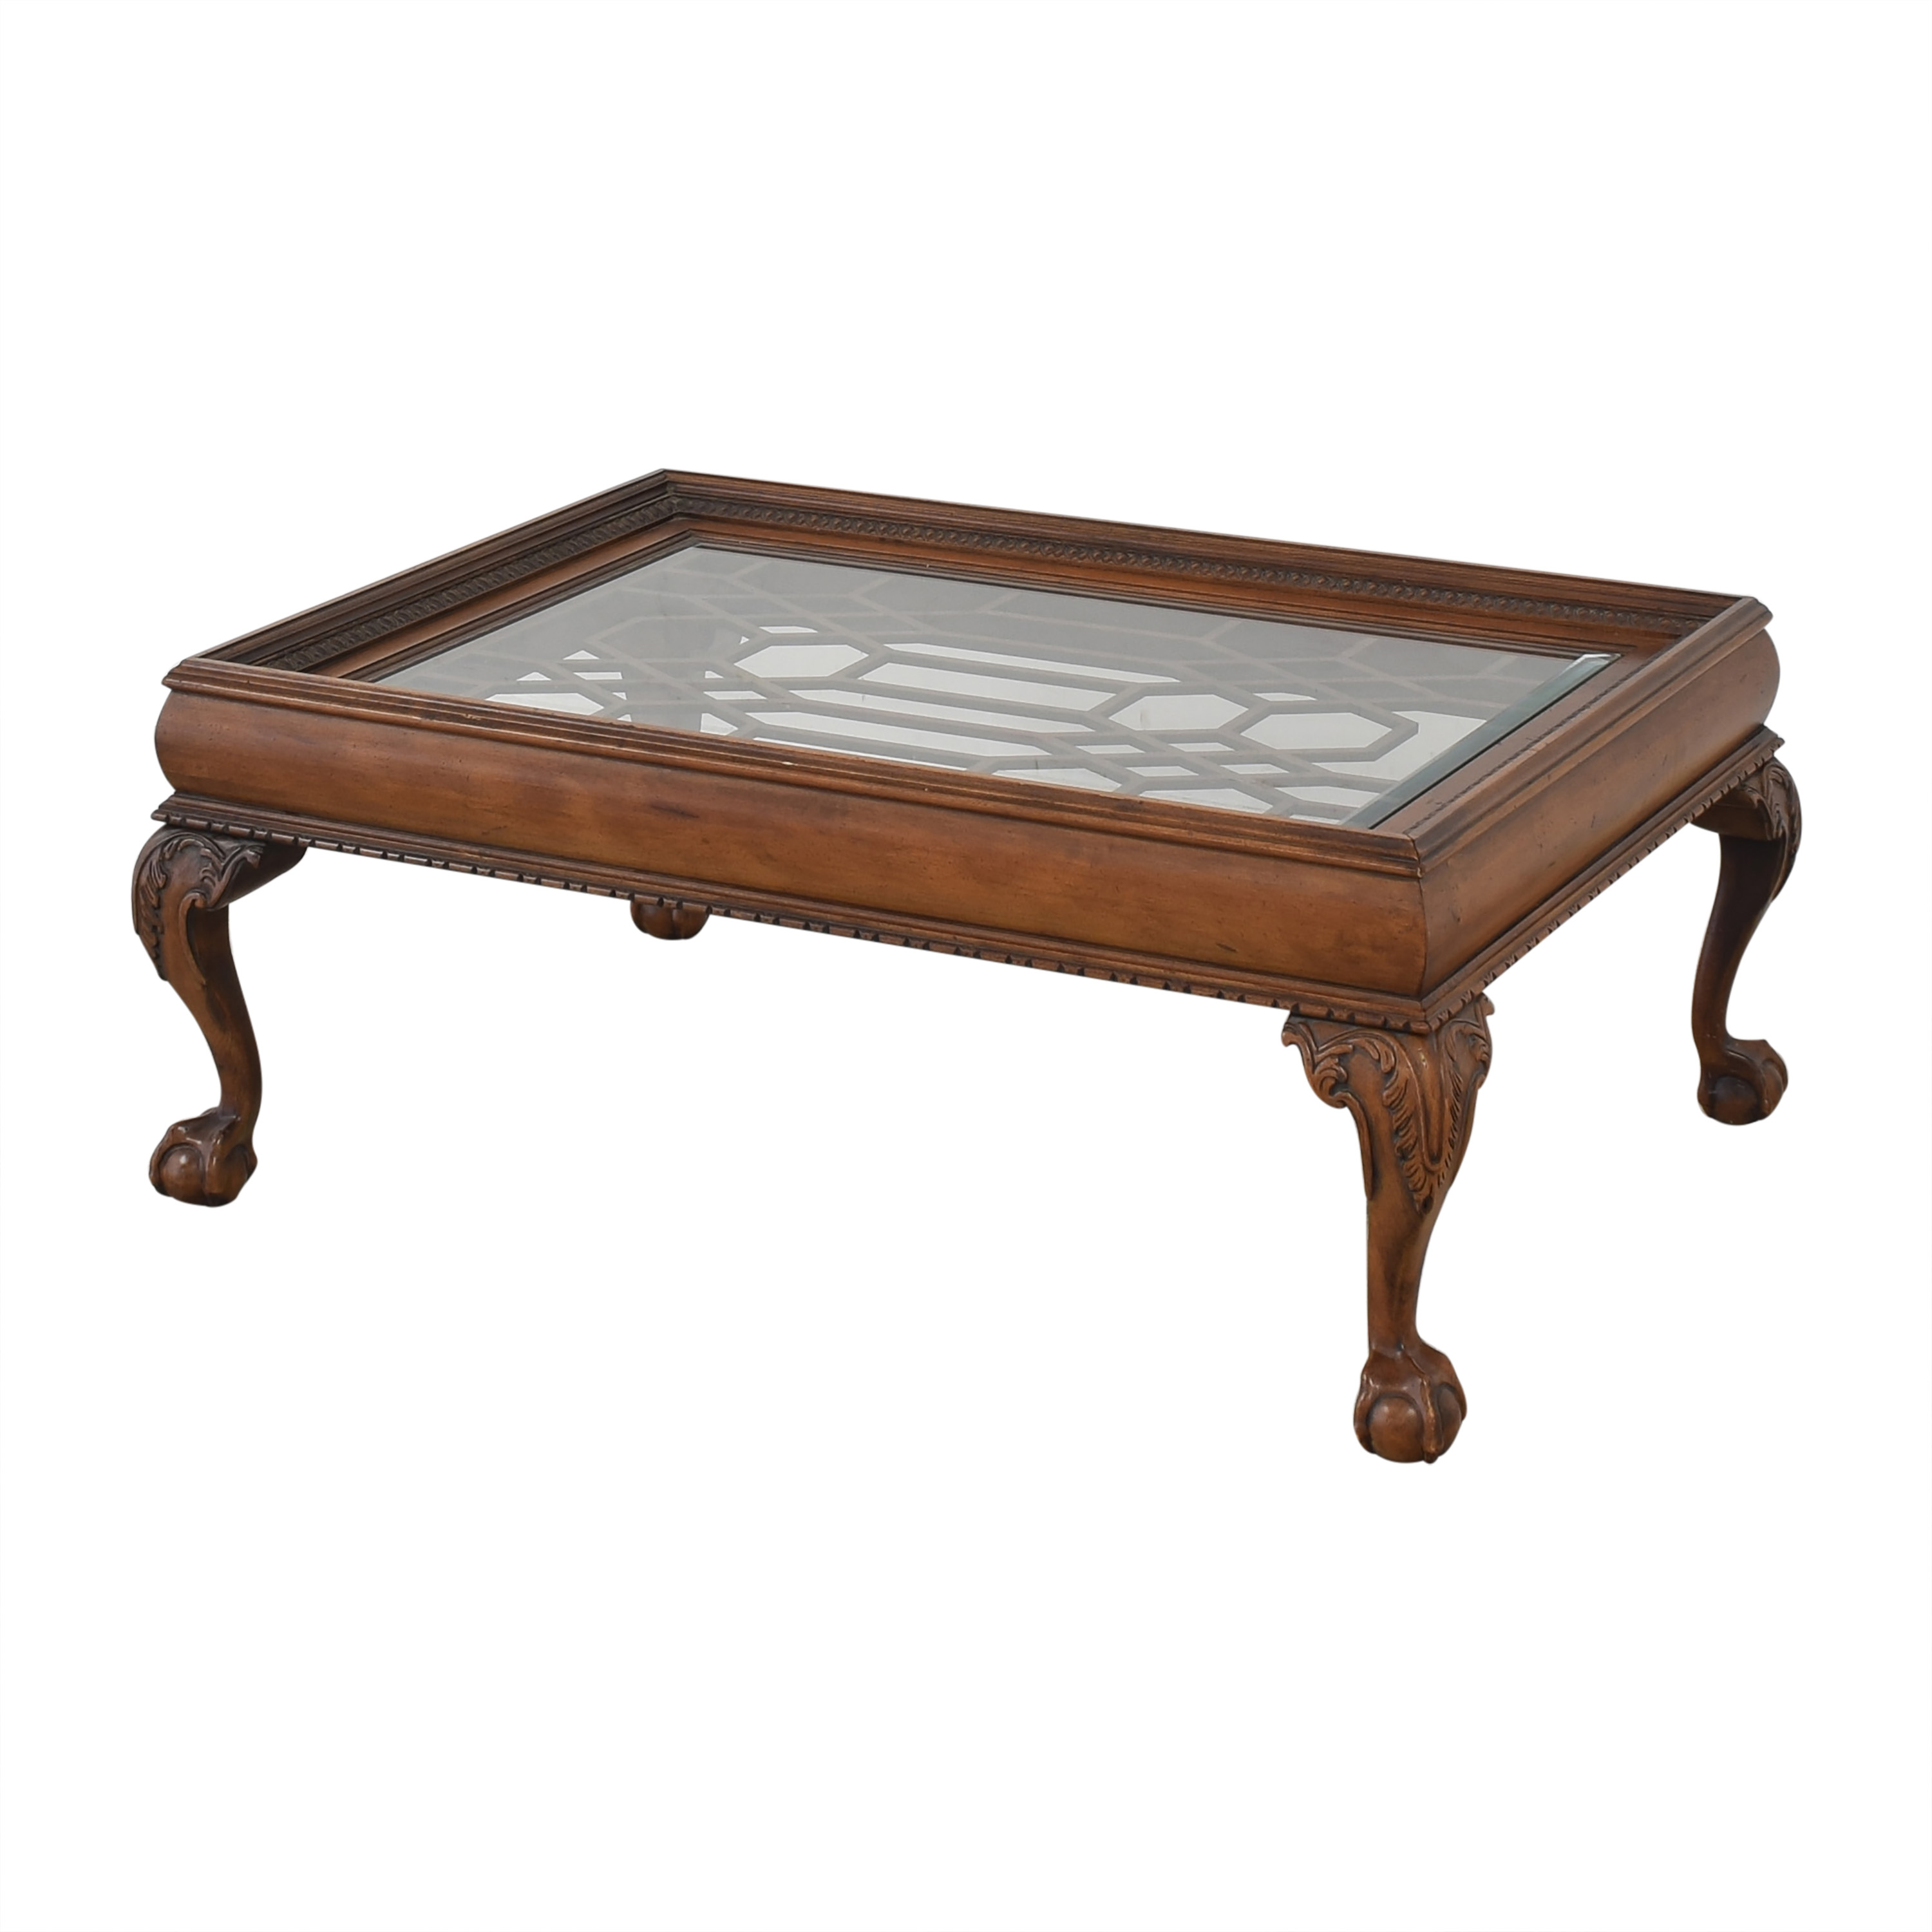 Century Furniture Century Furniture Ball and Claw Coffee Table coupon